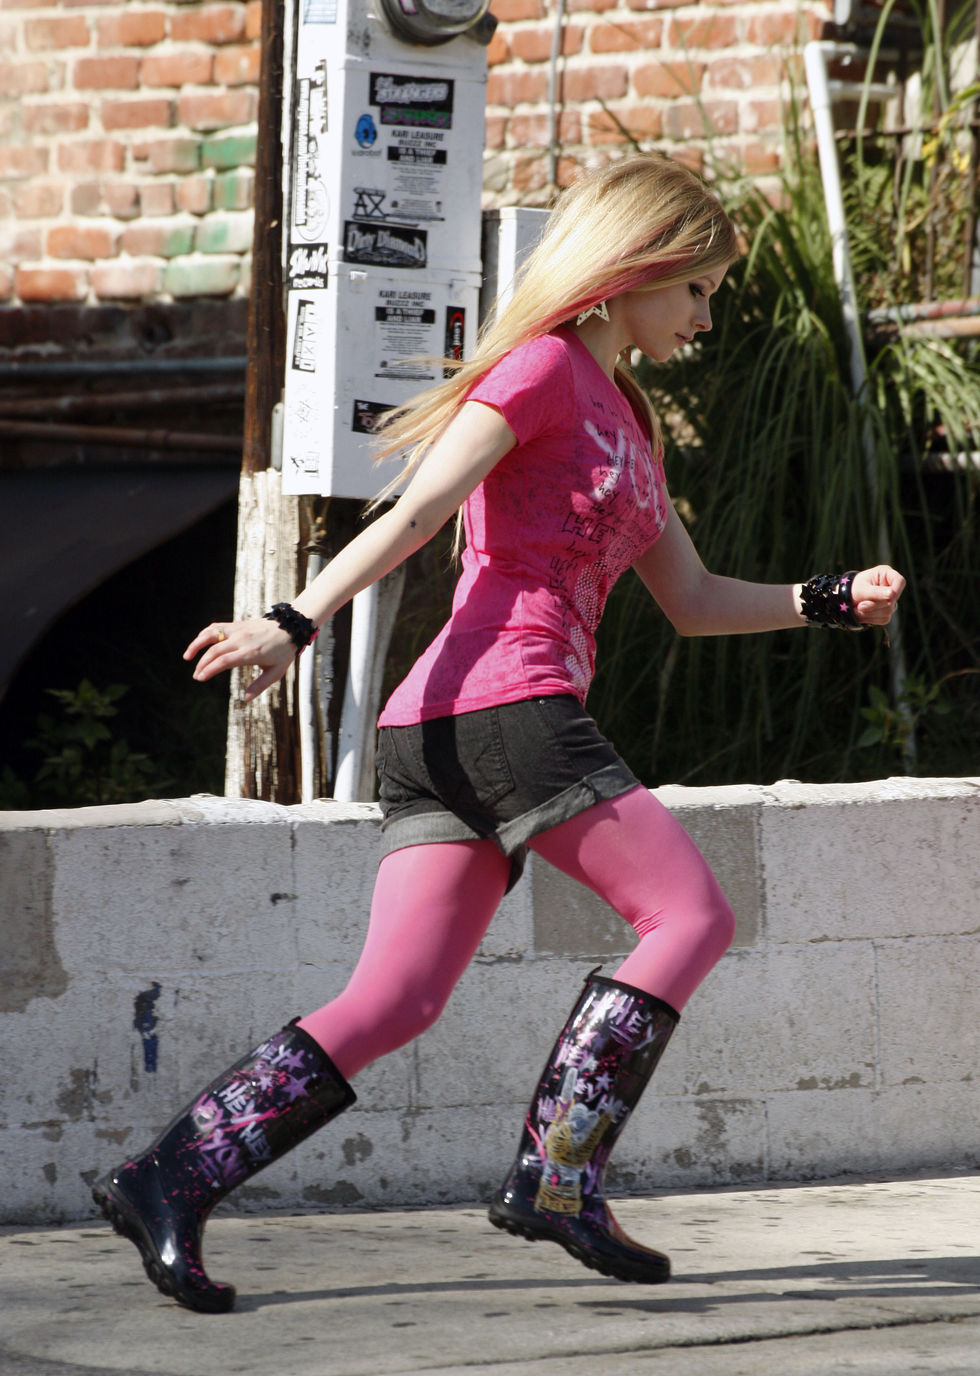 avril-lavigne-candids-at-photoshoot-for-abbey-dawn-clothing-line-01